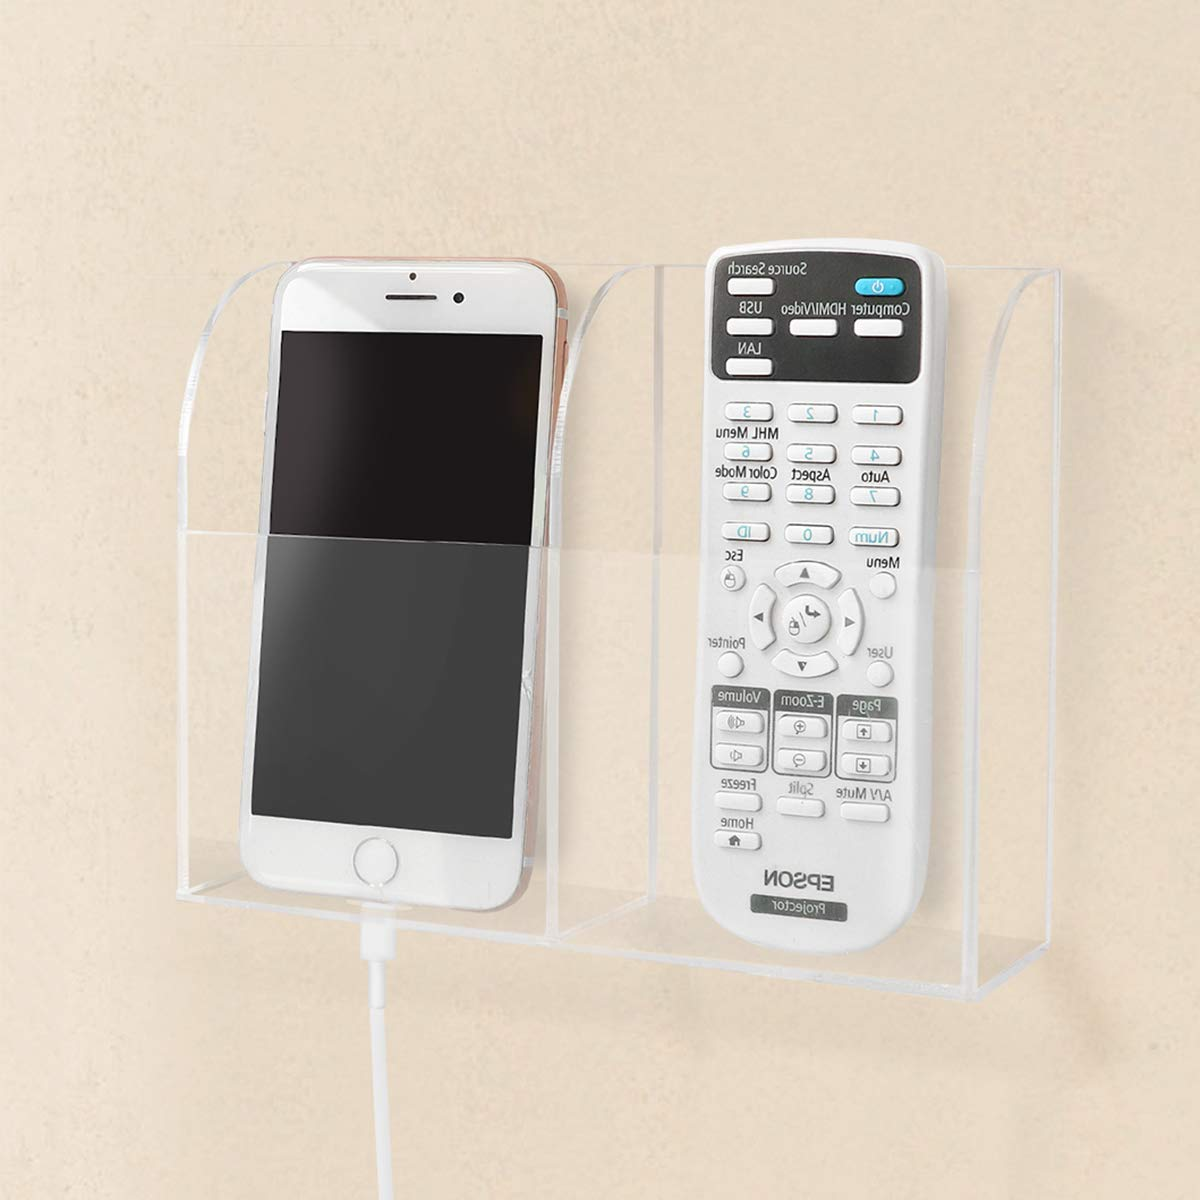 Uoisaiko Remote Control Holder Wall Mount Acrylic Remote Caddy Media Controller Organizer TV Remote Holder Wall Adhesive Storage Box